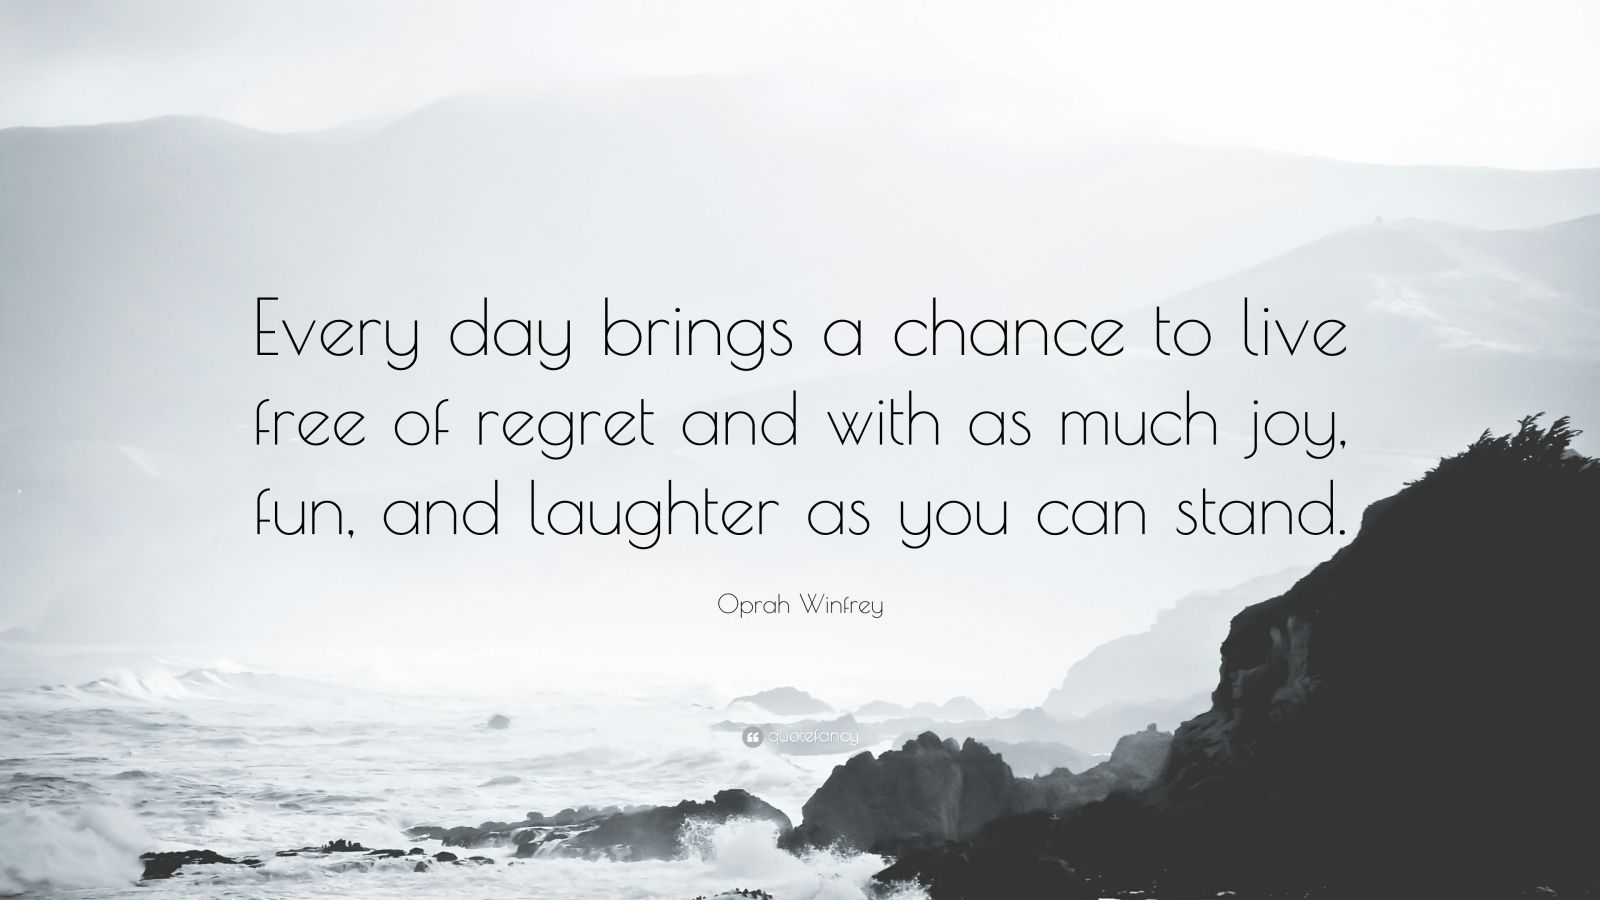 """Oprah Winfrey Quote: """"Every day brings a chance to live free of regret and with as much joy, fun, and laughter as you can stand."""""""